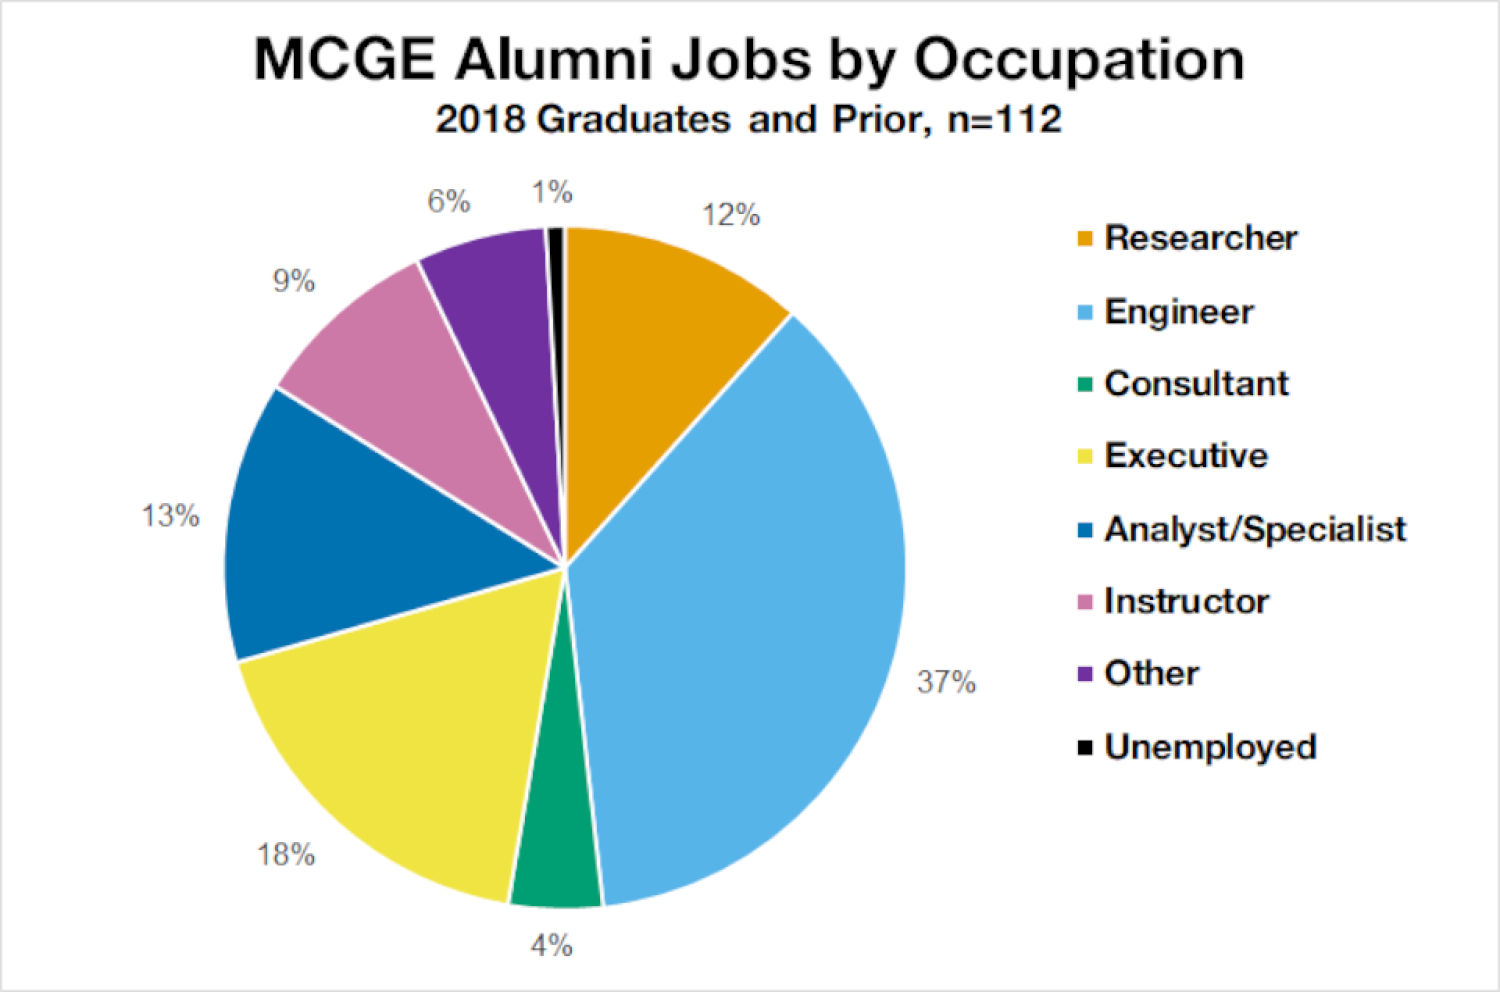 Pie chart of alumni jobs by occupation